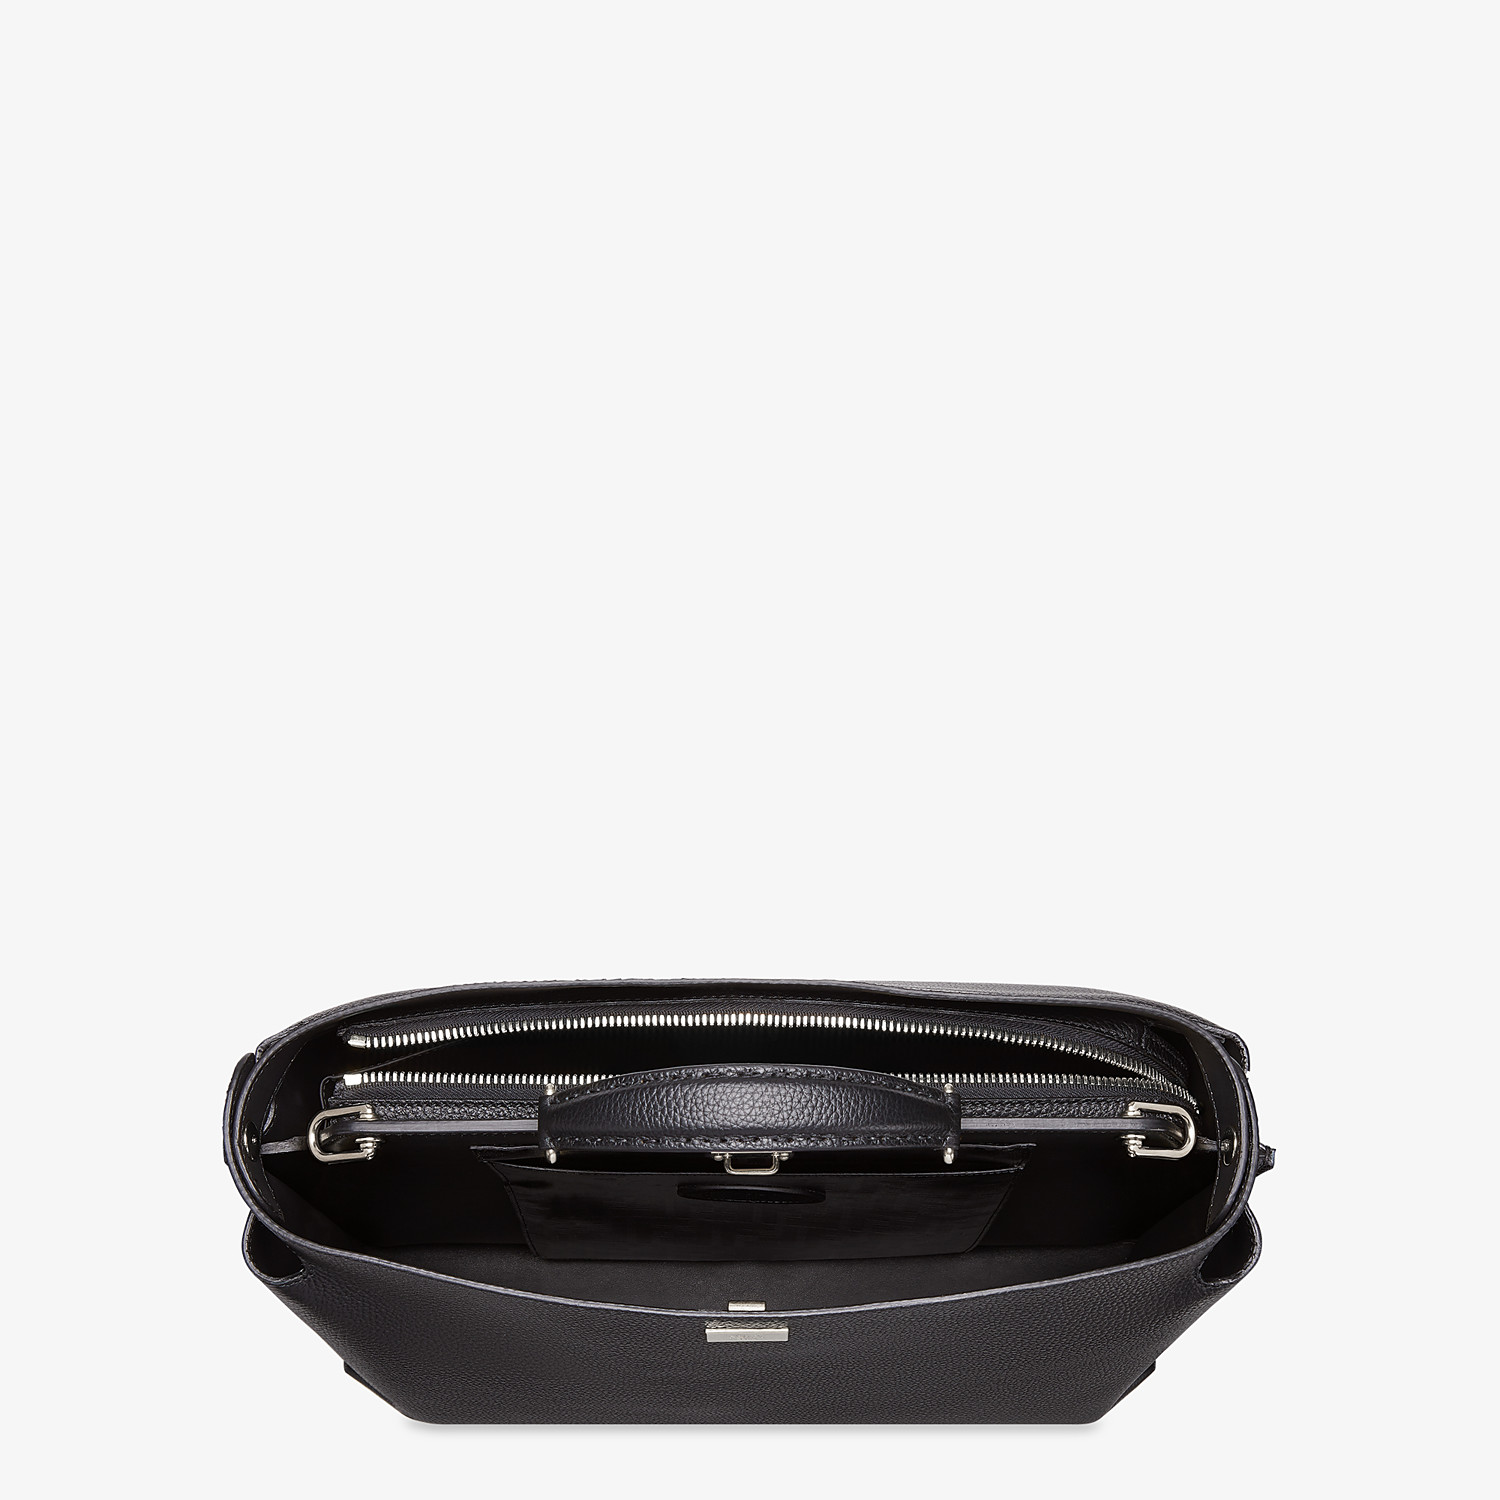 FENDI PEEKABOO ICONIC ESSENTIAL - Sac en cuir noir - view 4 detail